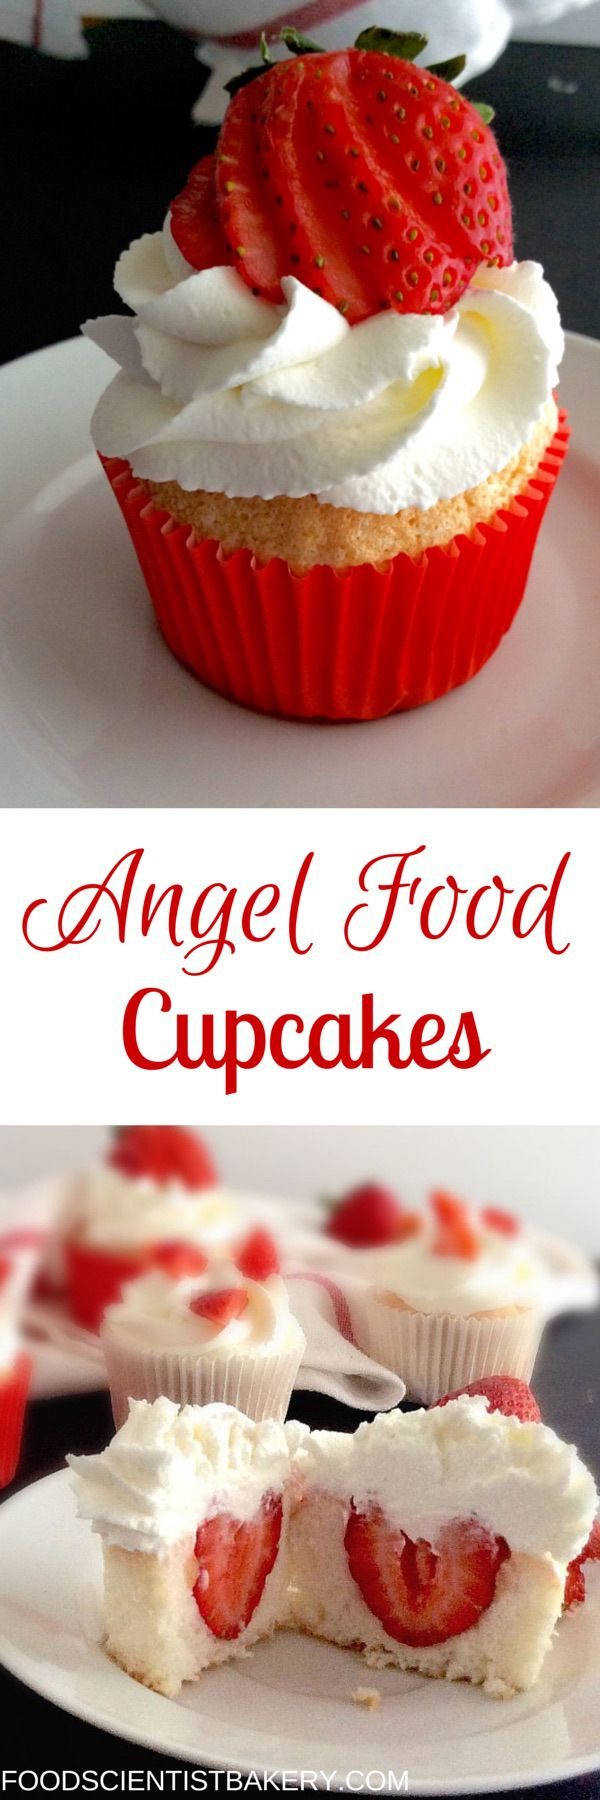 White Angel Food Cupcakes: doubled the recipe (made 14 regular cupcakes). They…